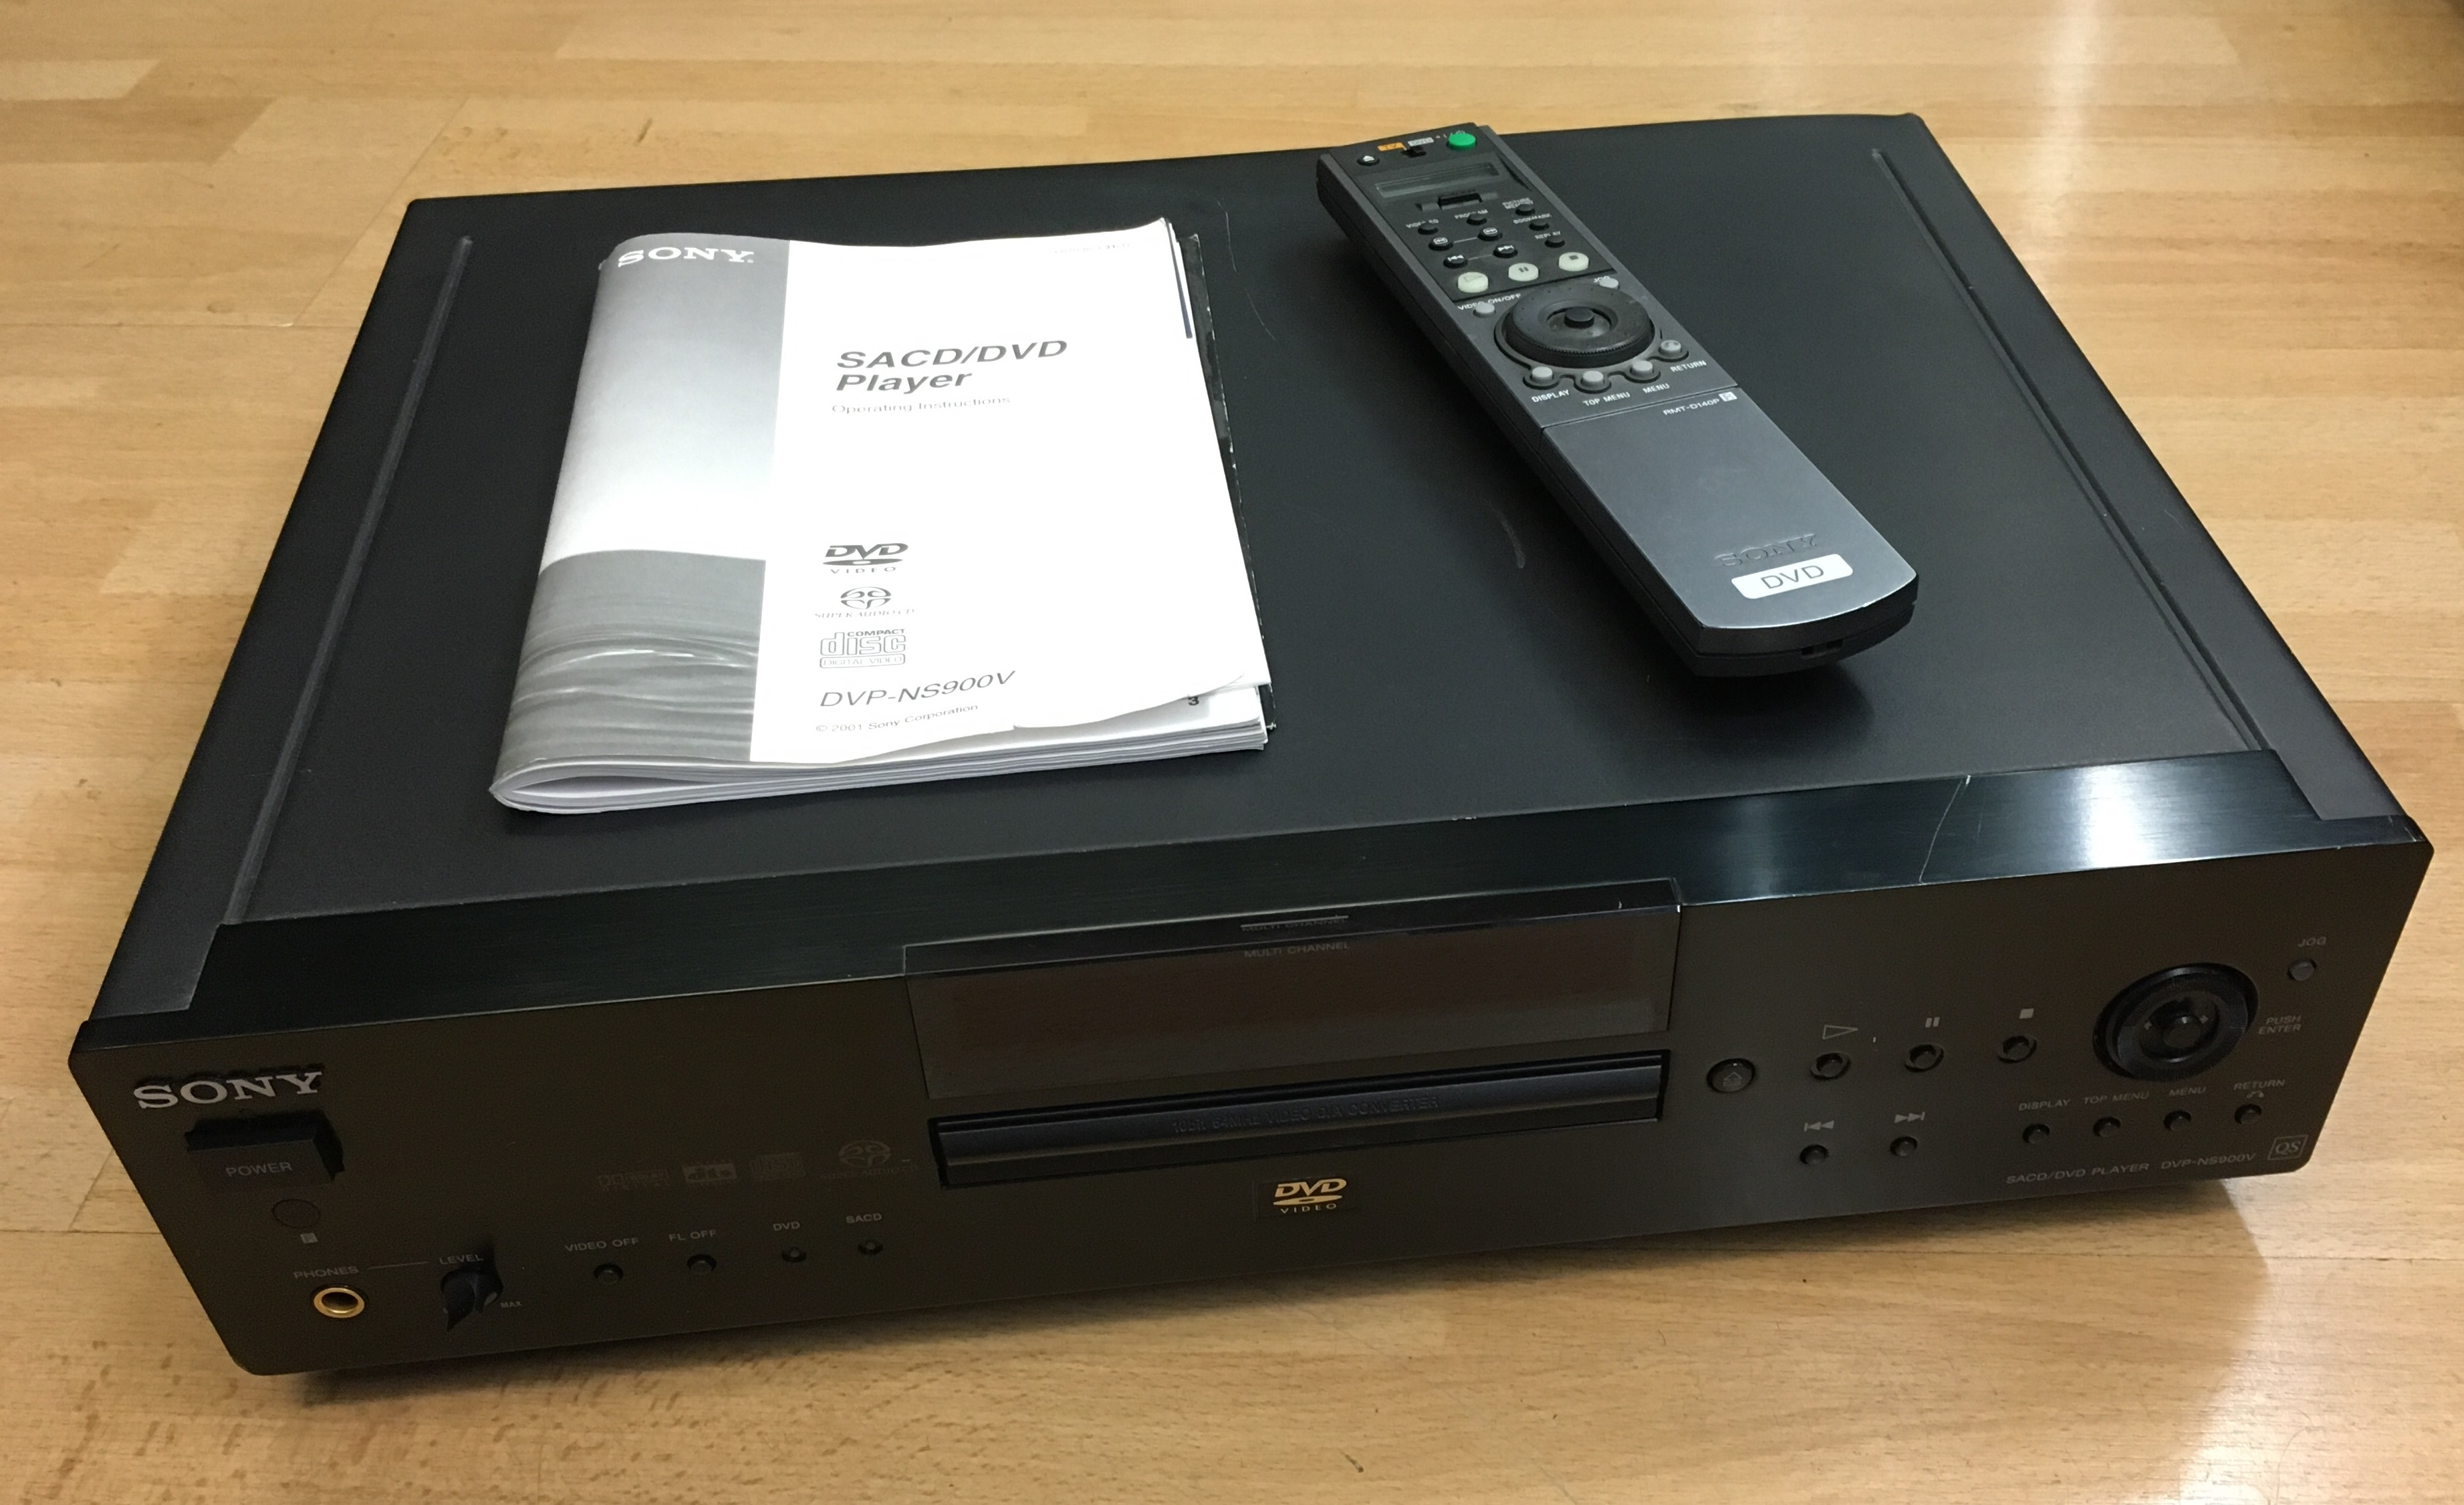 Picture of Sony DVP-NS900V